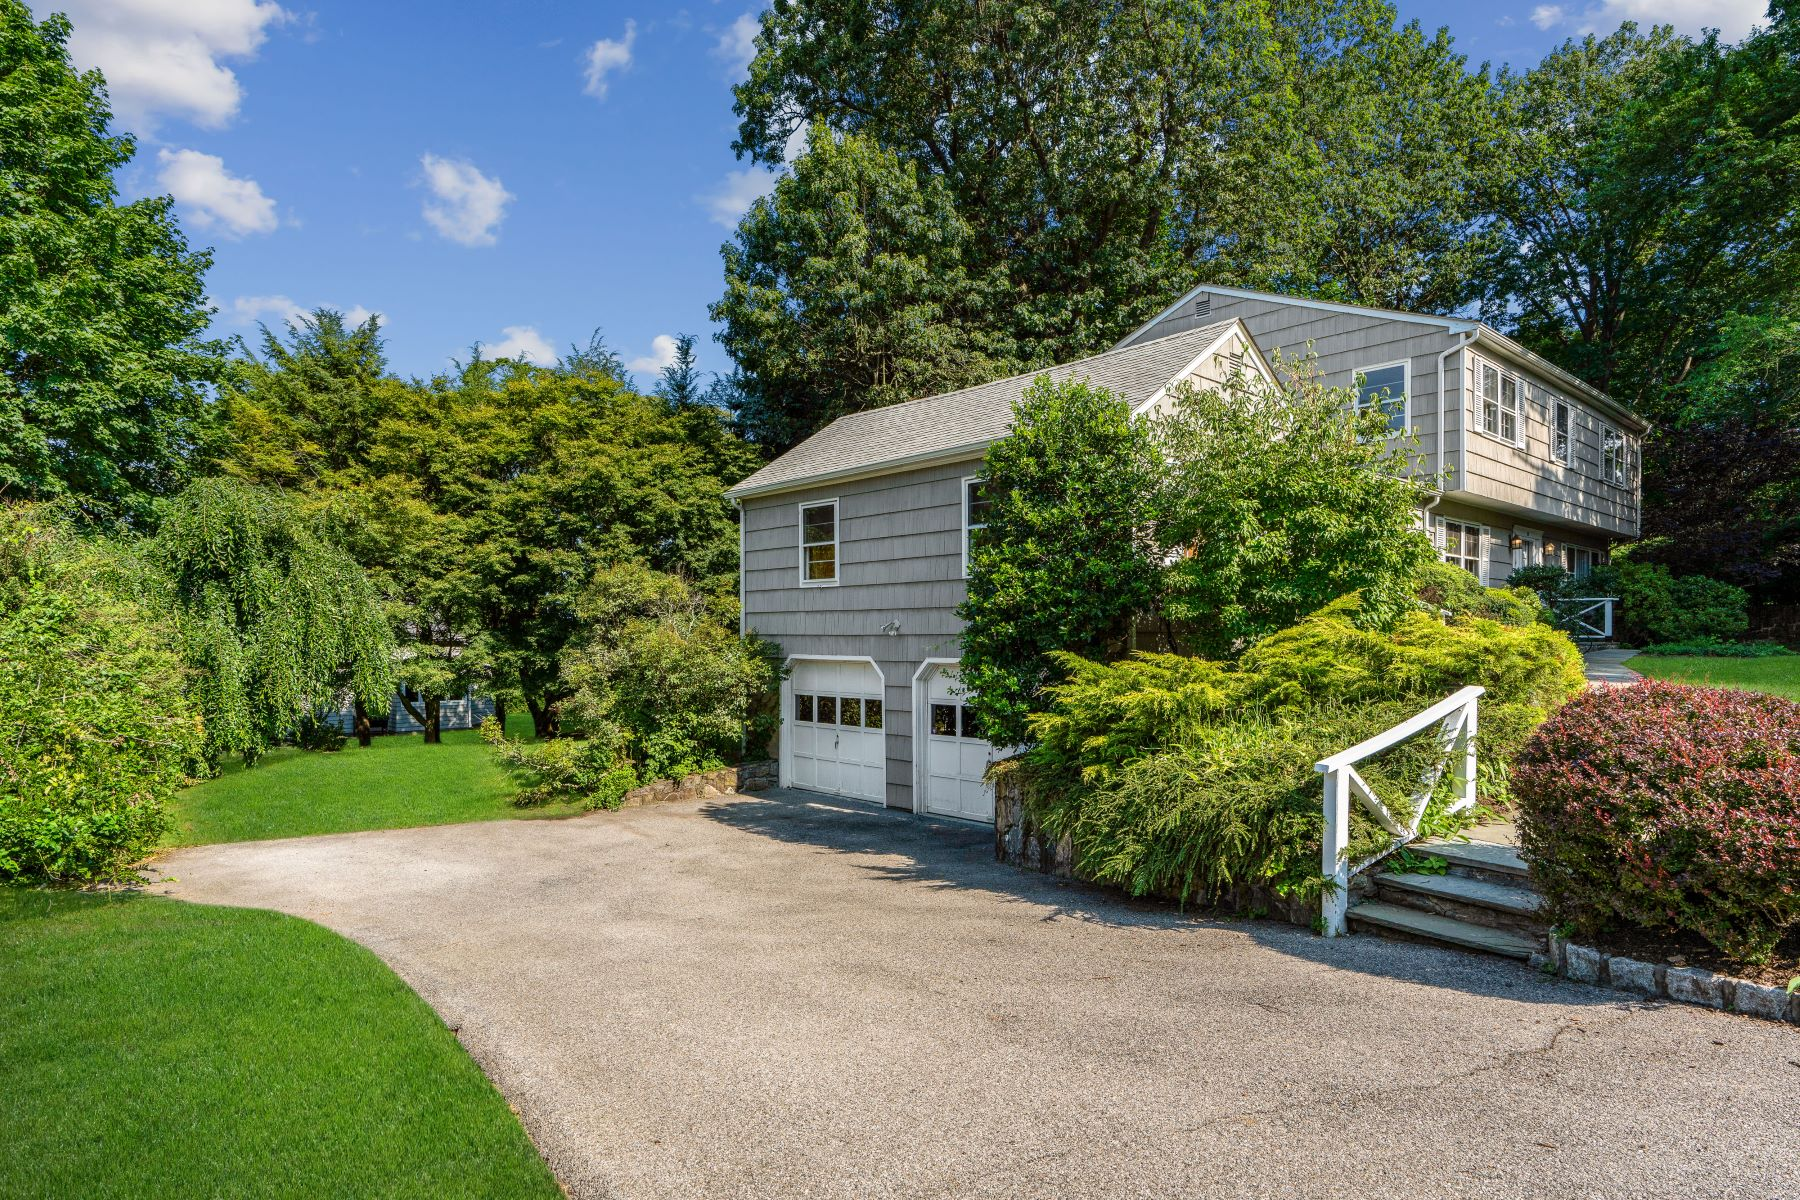 Single Family Homes for Active at Center Hall Colonial 10 River Terrace Tarrytown, New York 10591 United States